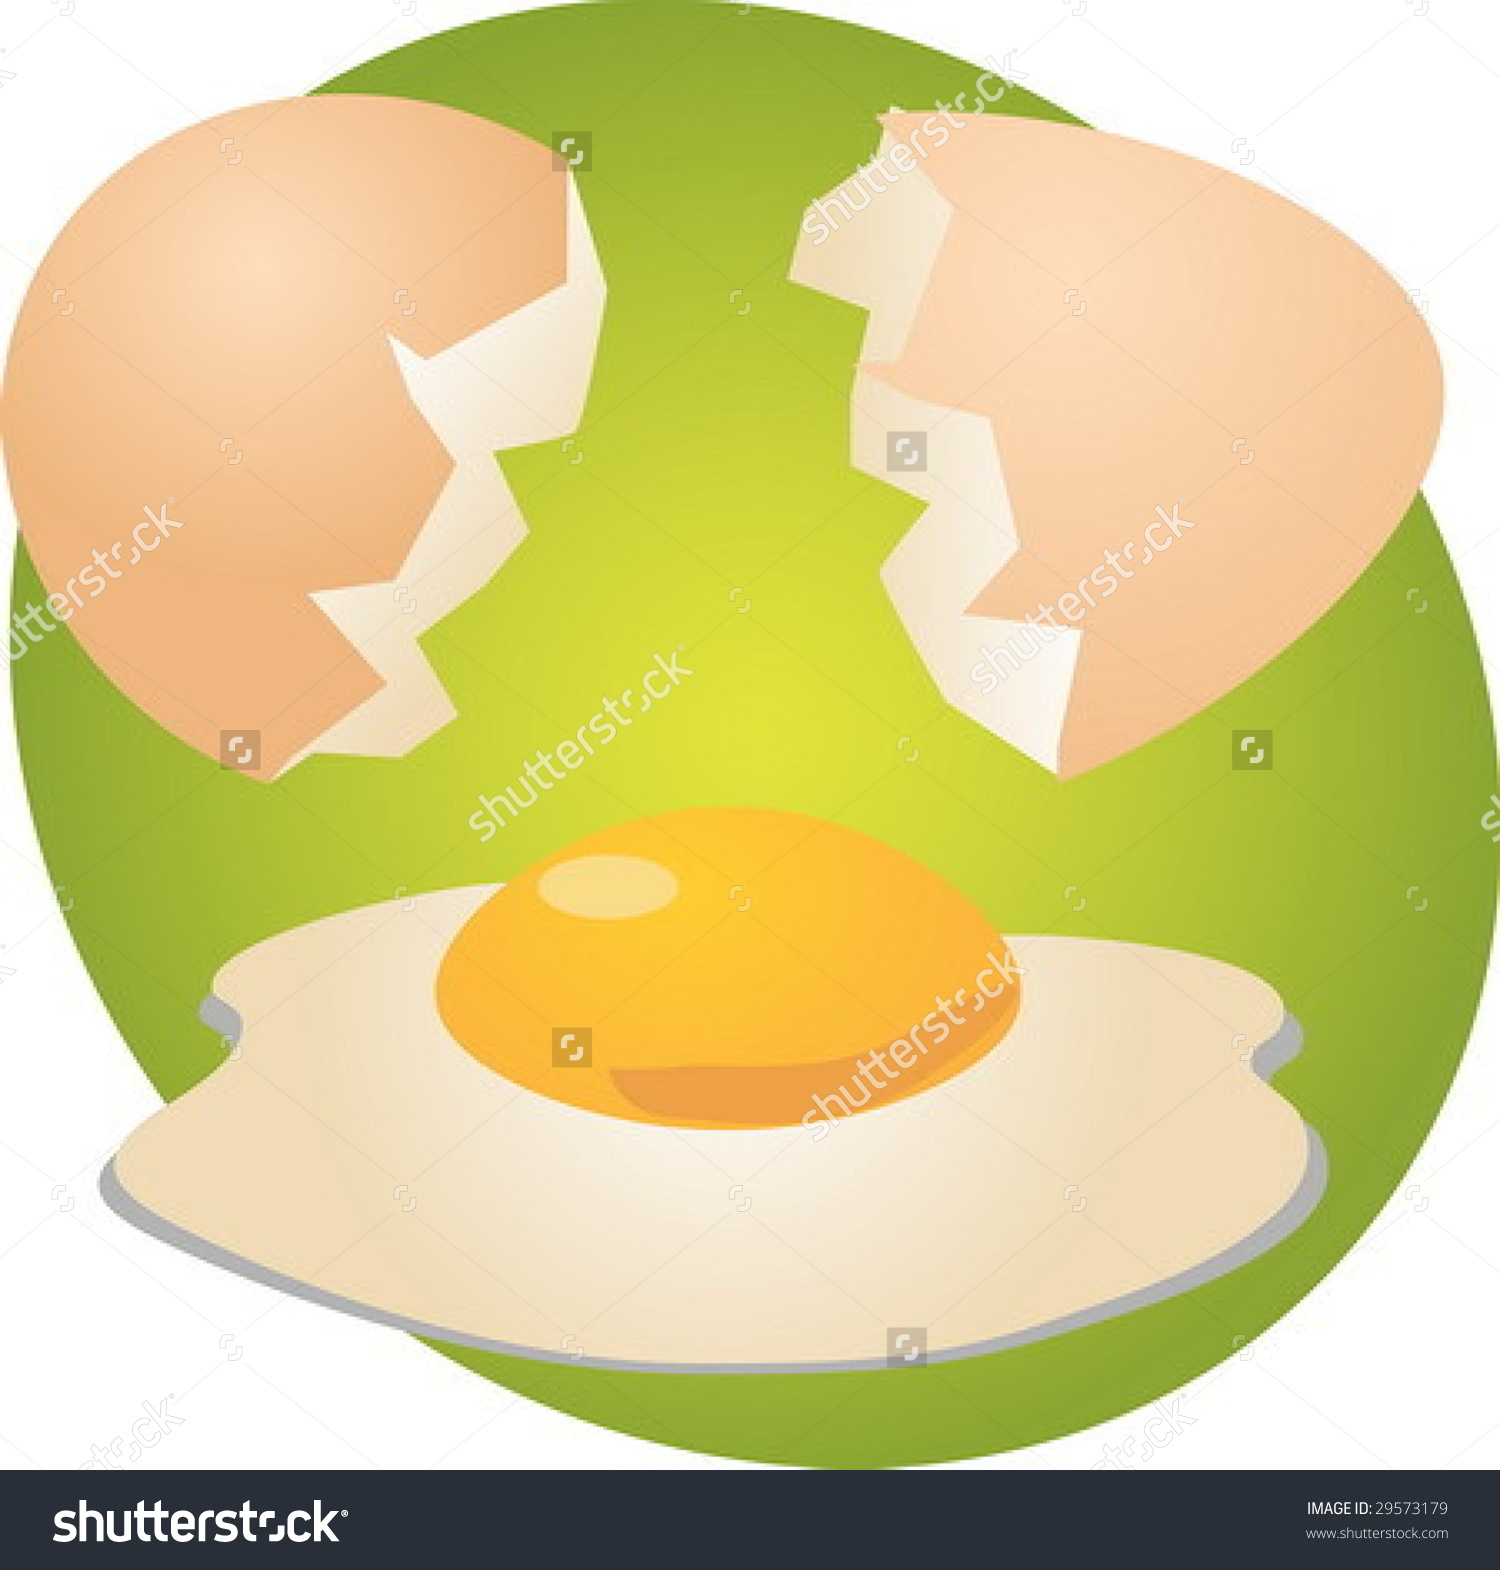 Egg Illustration Clipart Open Shell Yolk Stock Vector 29573179.